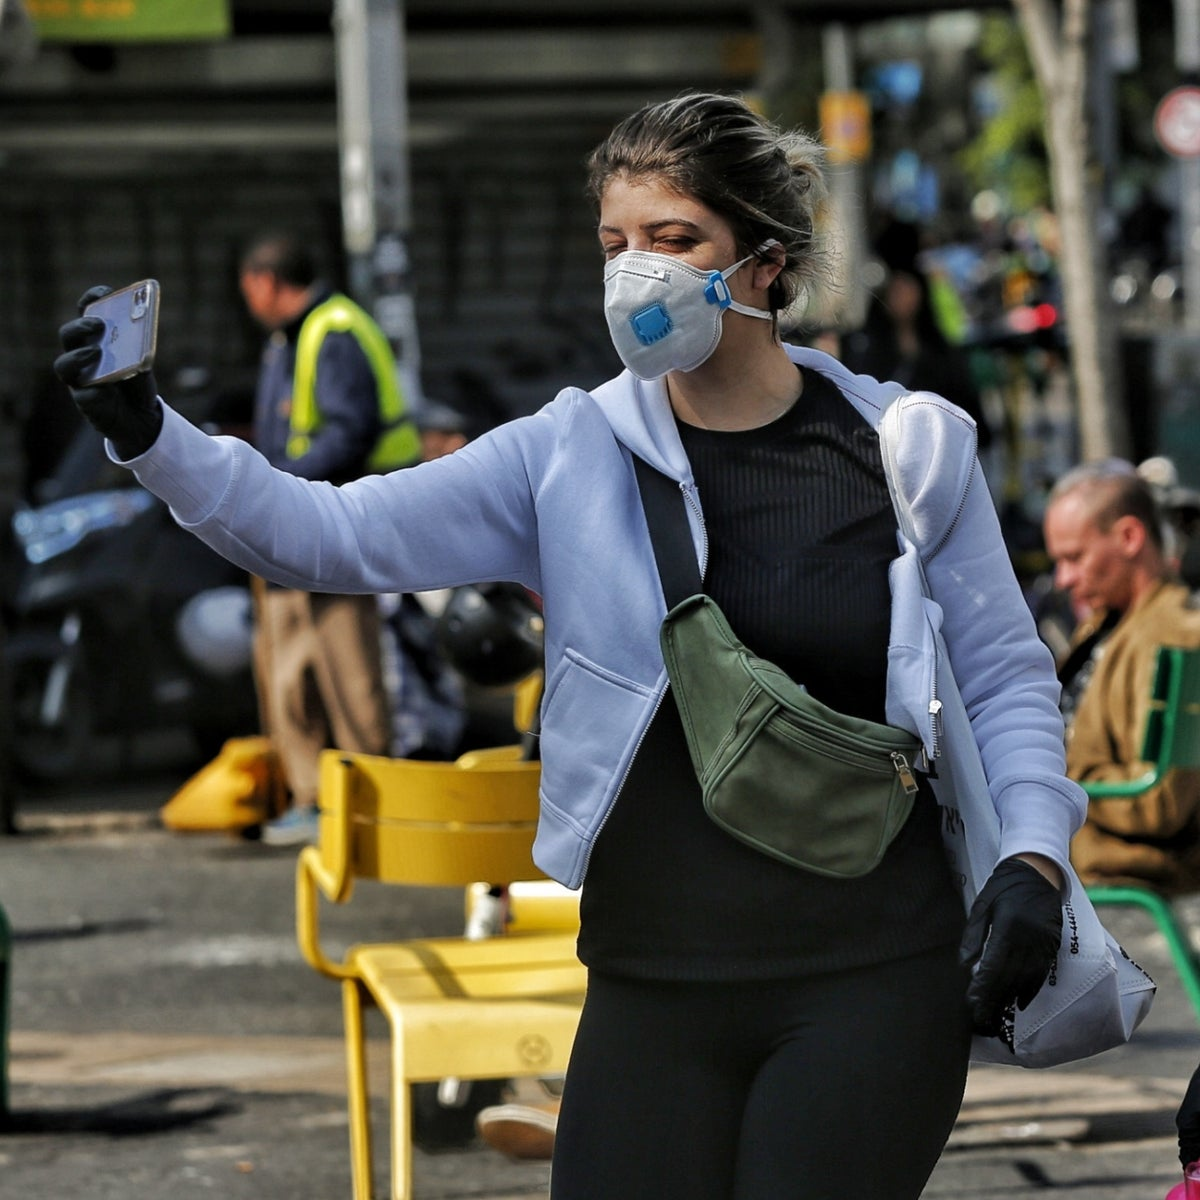 Wearing masks in Tel Aviv. The Shin Bet's capabilities were originally supposed to be used in the struggle against terrorism, espionage and subversion.